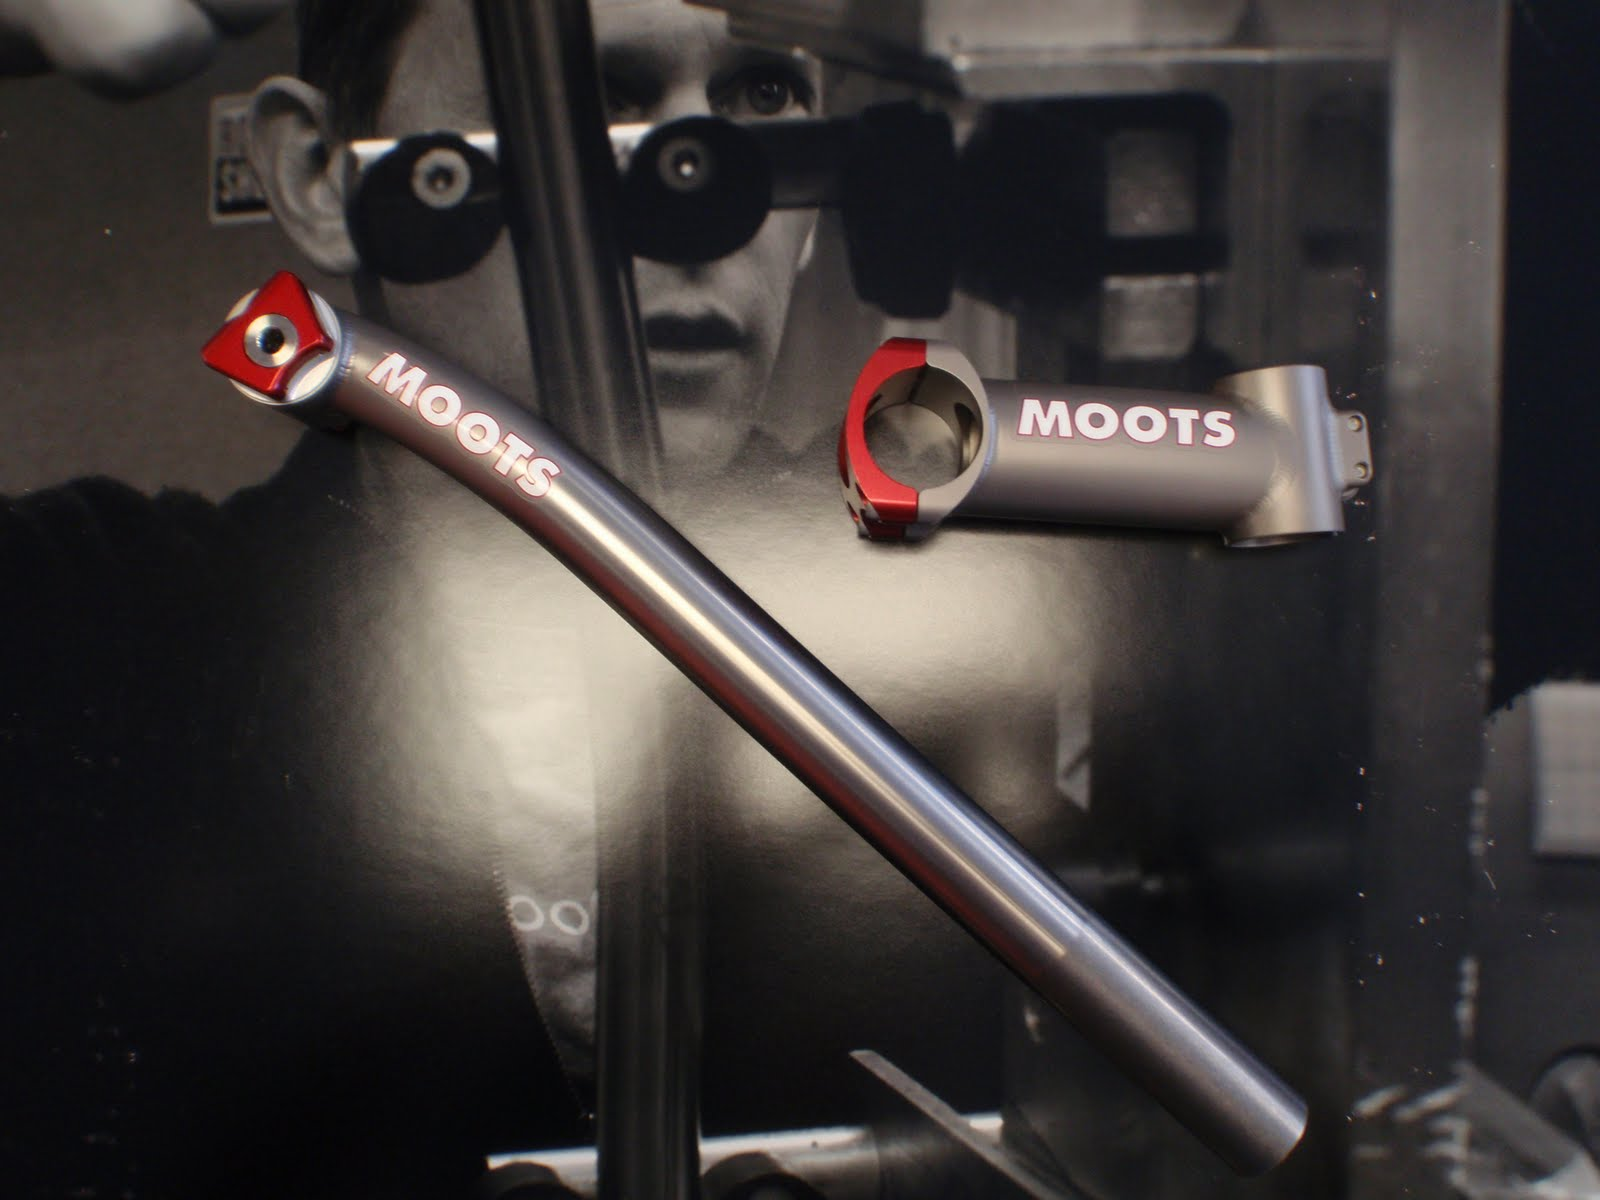 We have Moots bikes & goodies